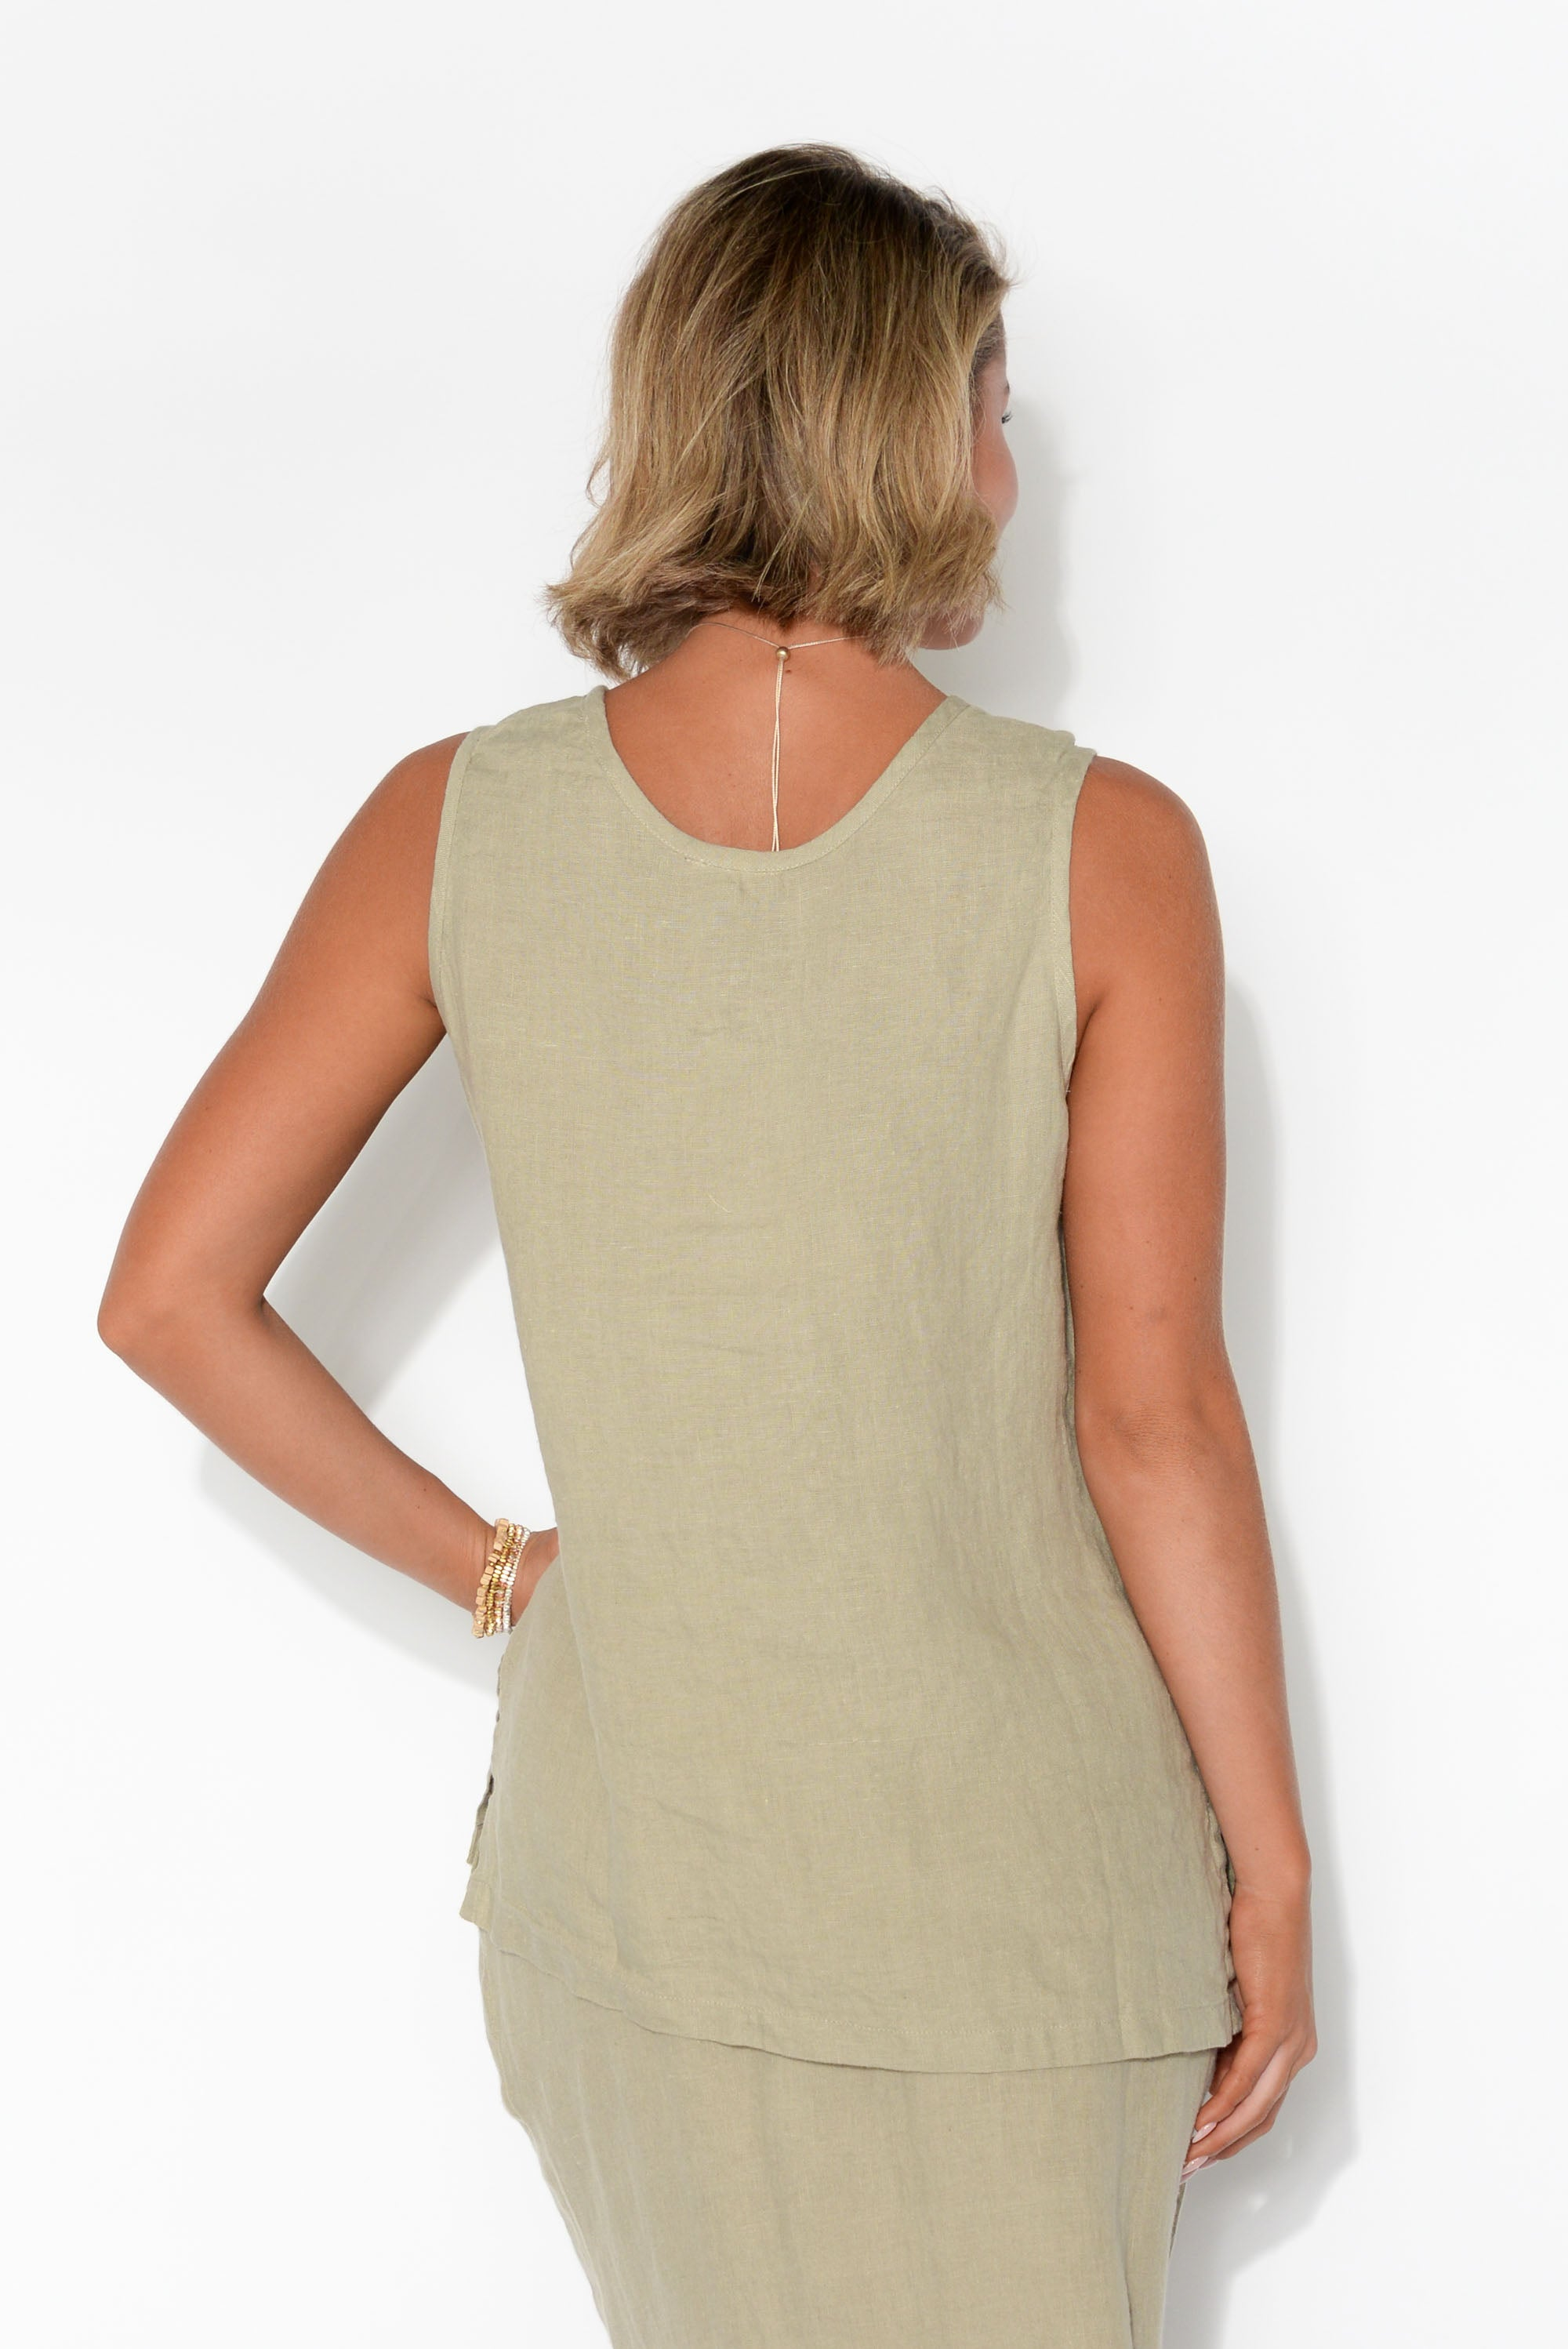 Mandalay Natural Linen Sleeveless Top